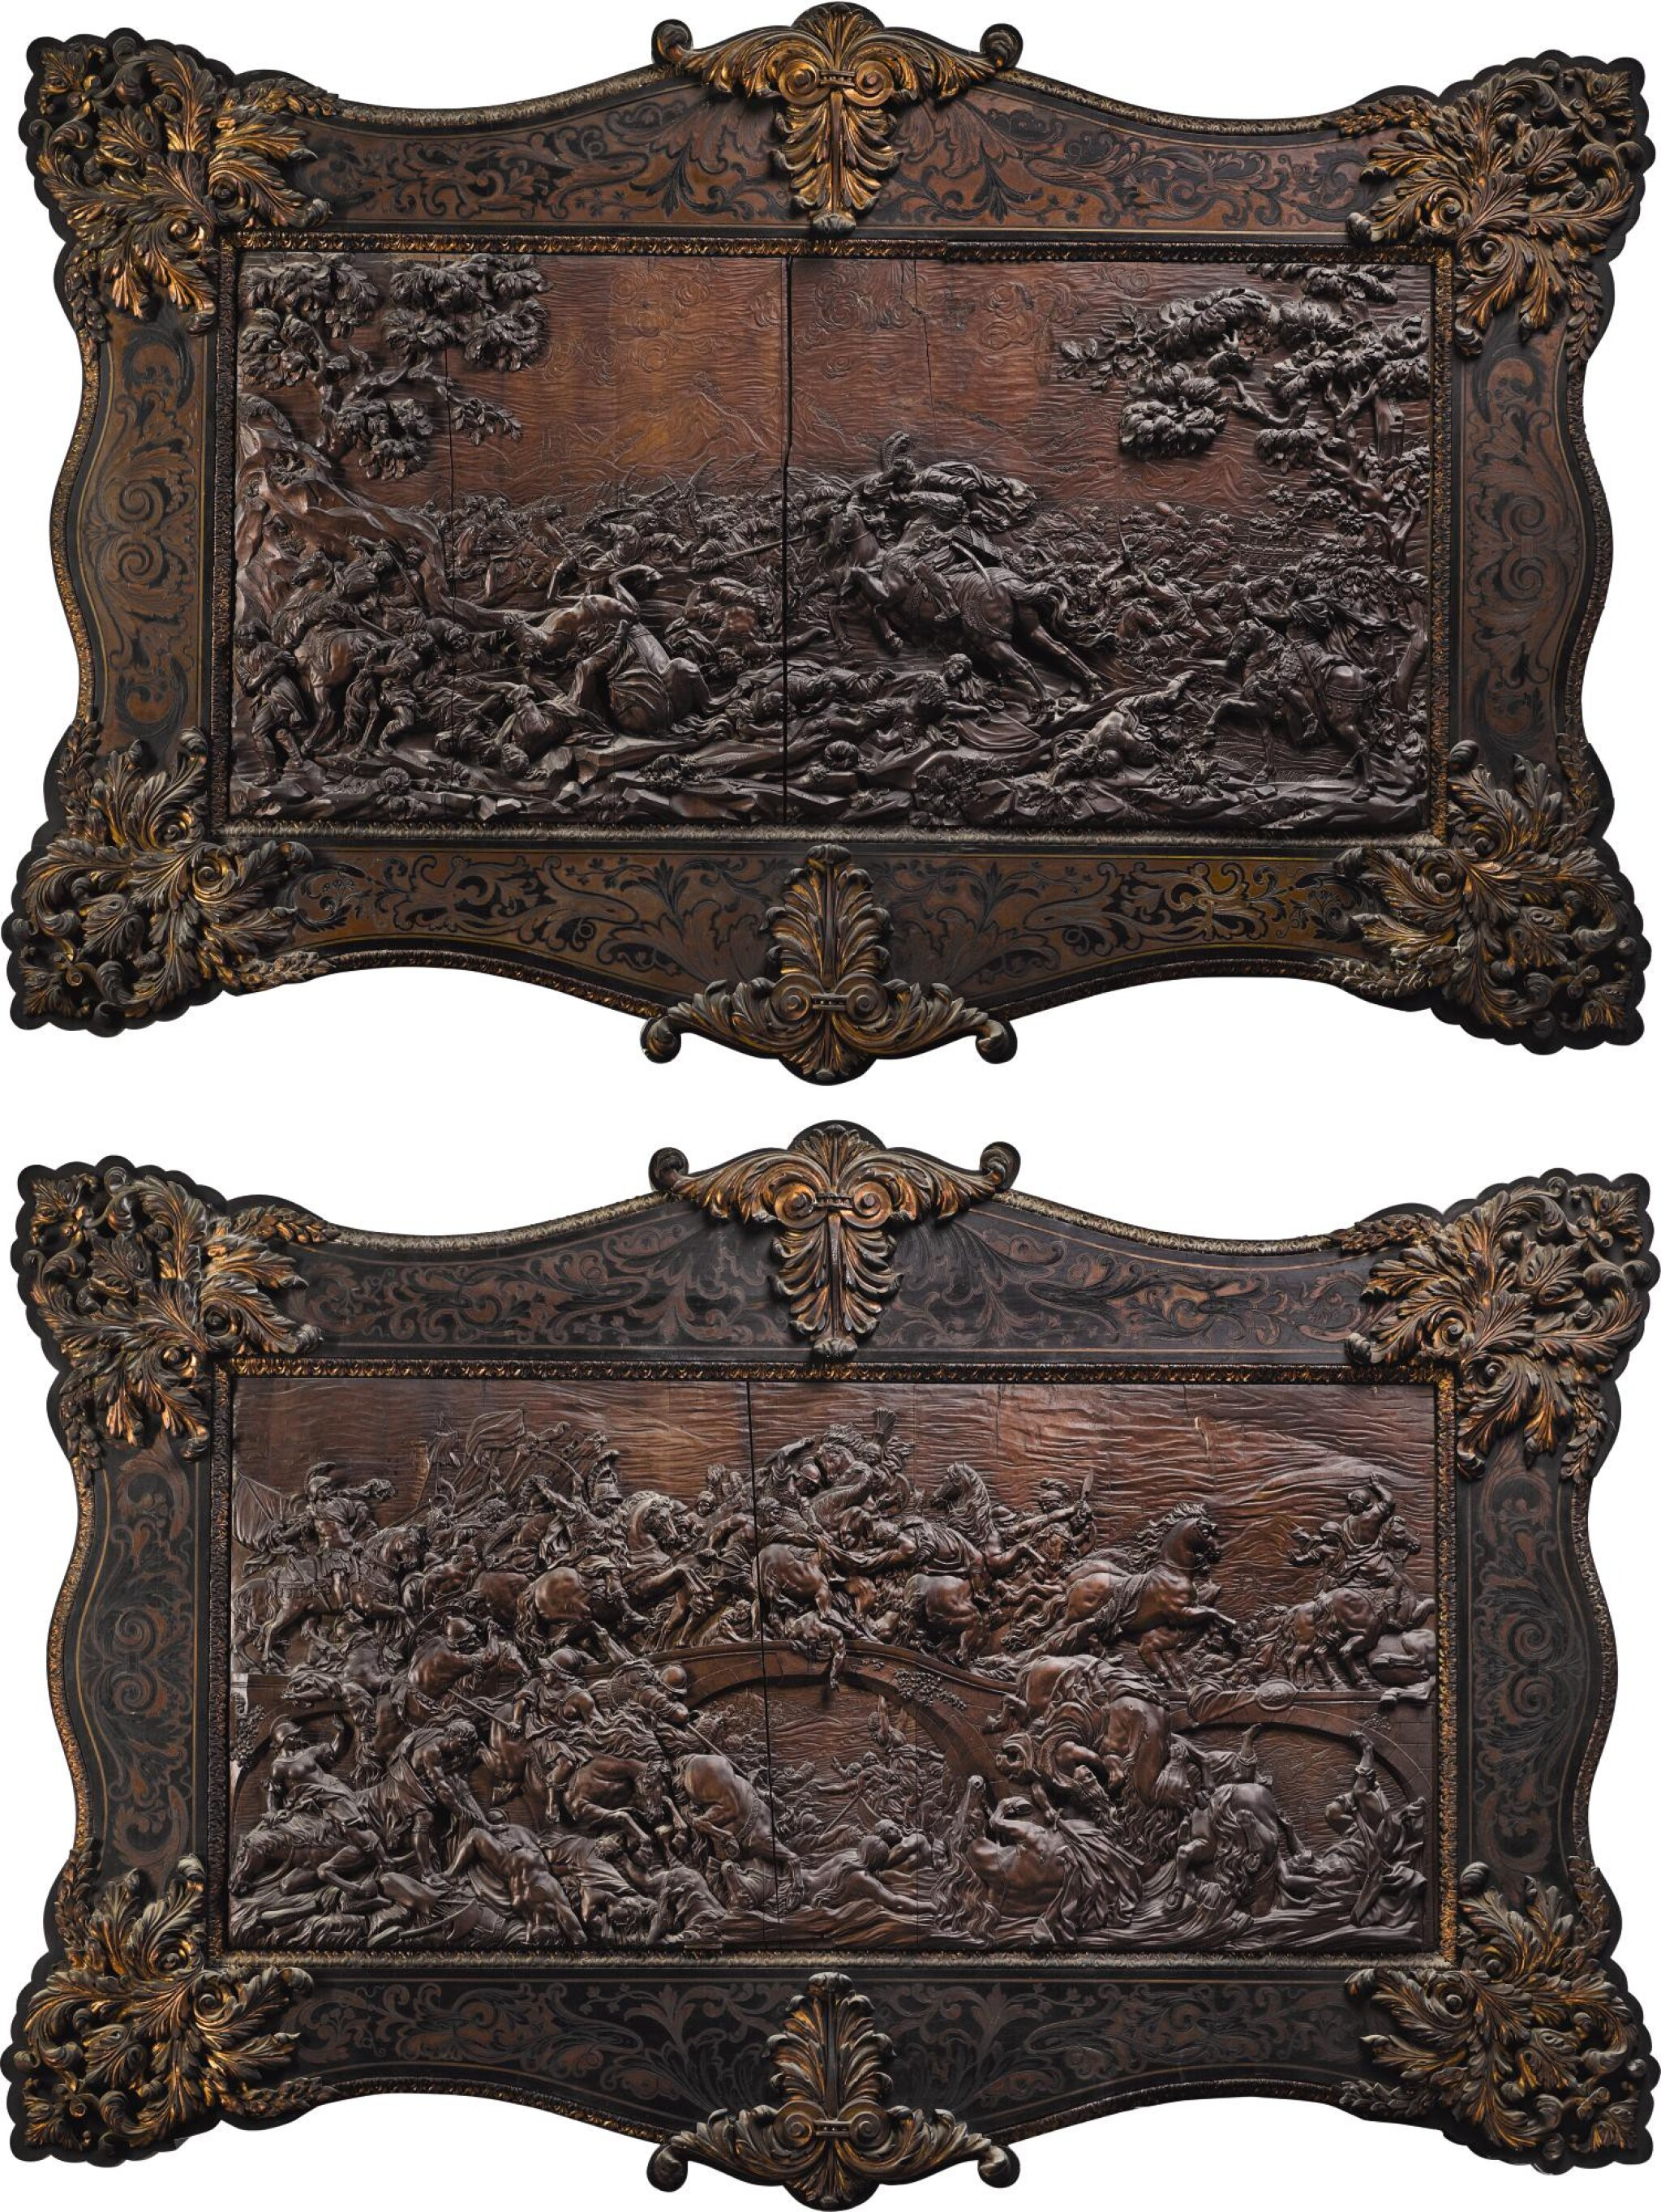 View full screen - View 1 of Lot 10. ANTOINE-MARIE MELOTTE, SOUTHERN NETHERLANDISH, LIÈGE, 1753 | PAIR OF EQUESTRIAN BATTLE SCENES.